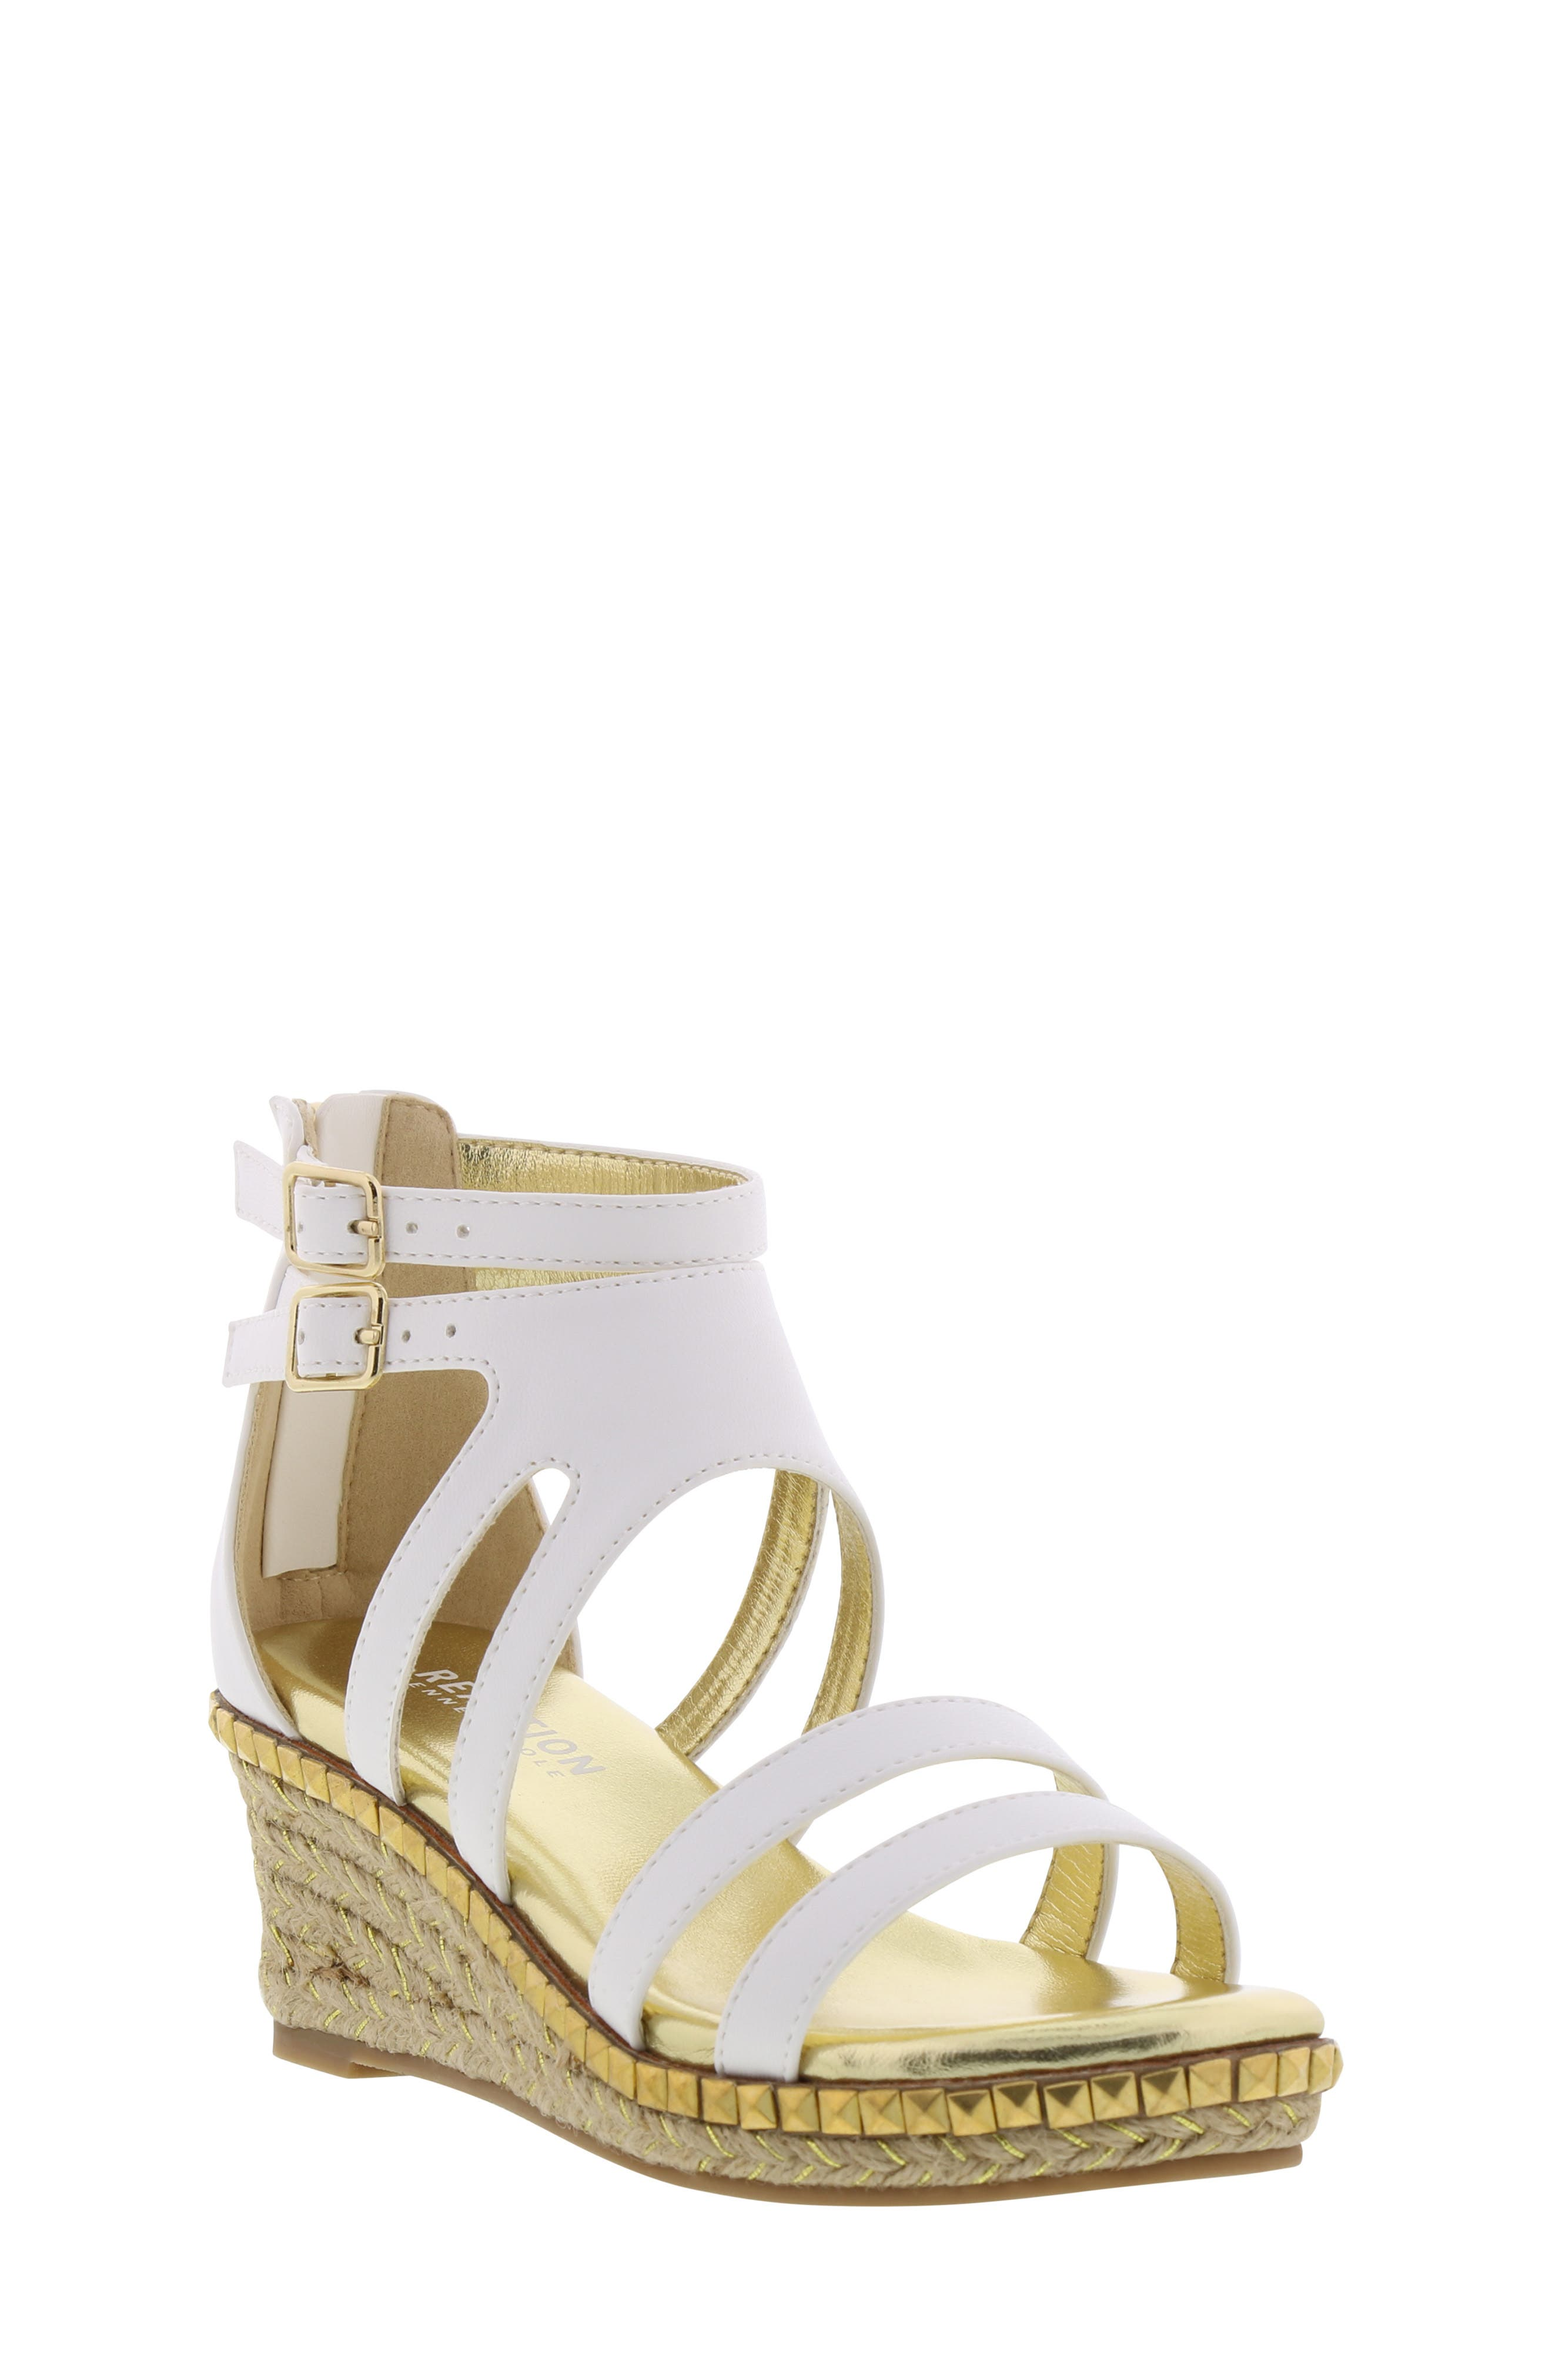 REACTION KENNETH COLE Reed Splash Wedge Sandal, Main, color, WHITE